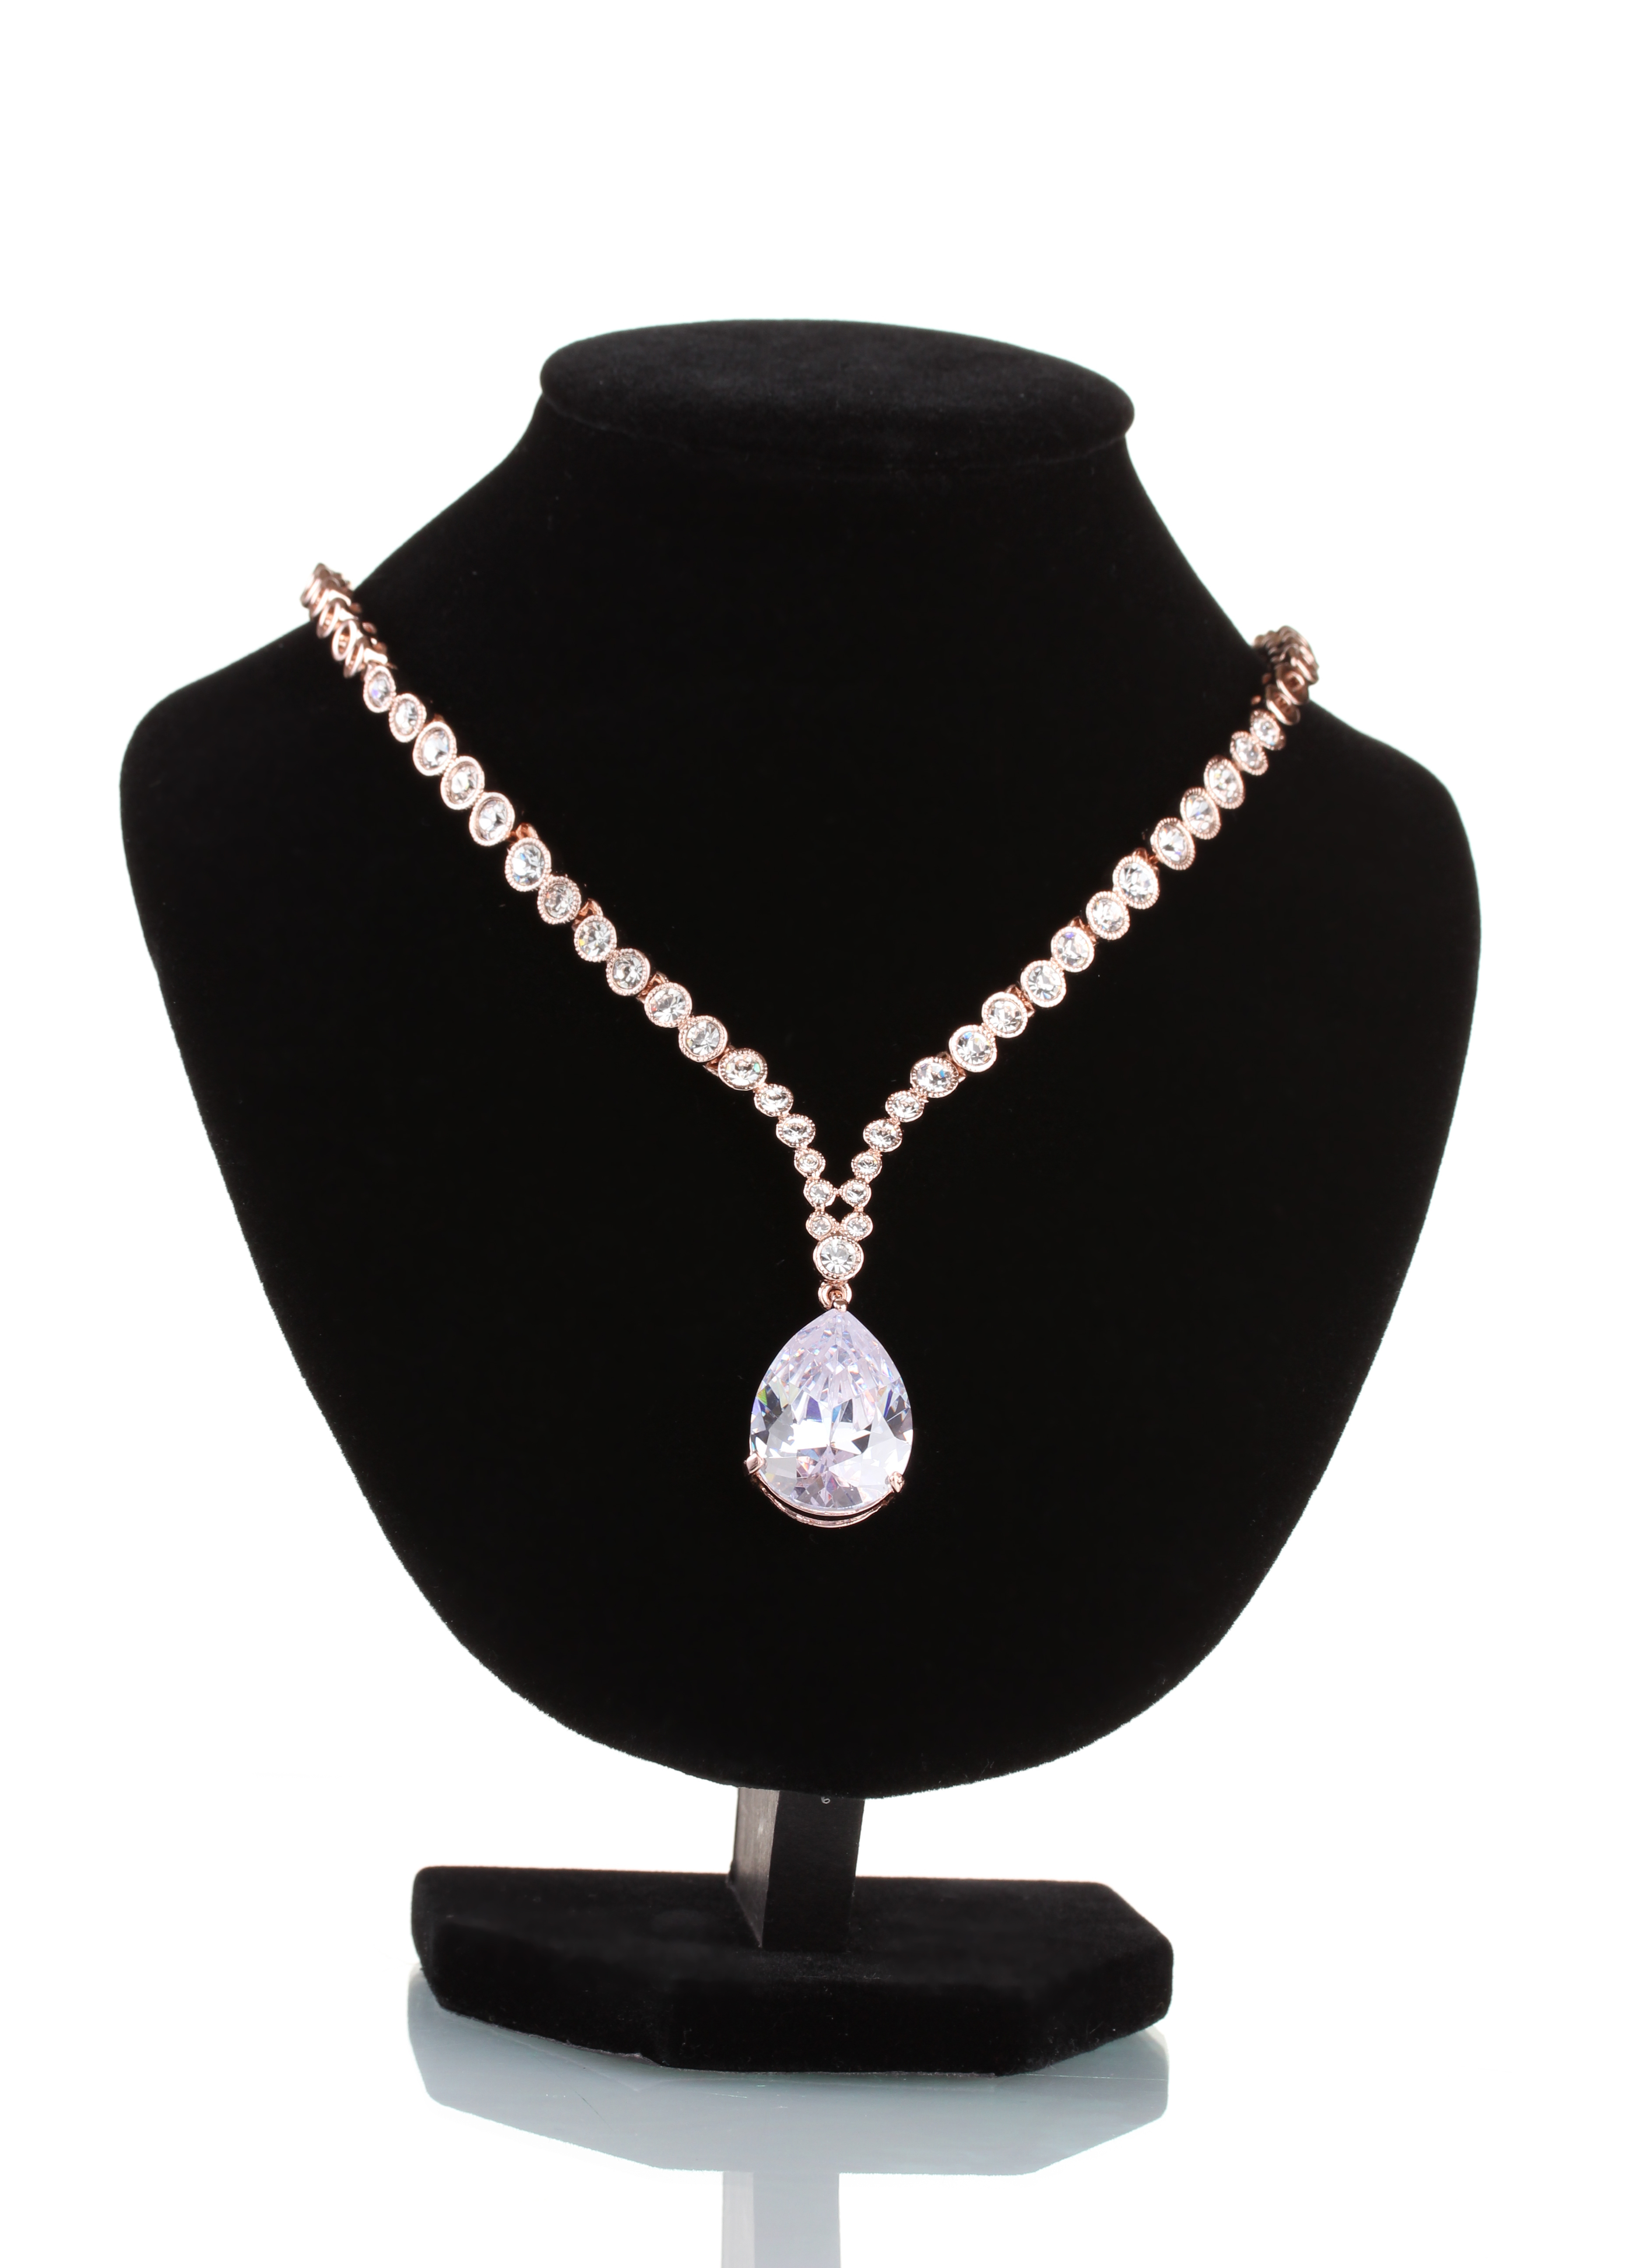 Sotheby S To Sell 33ct Flawless Diamond Necklace Dda Group